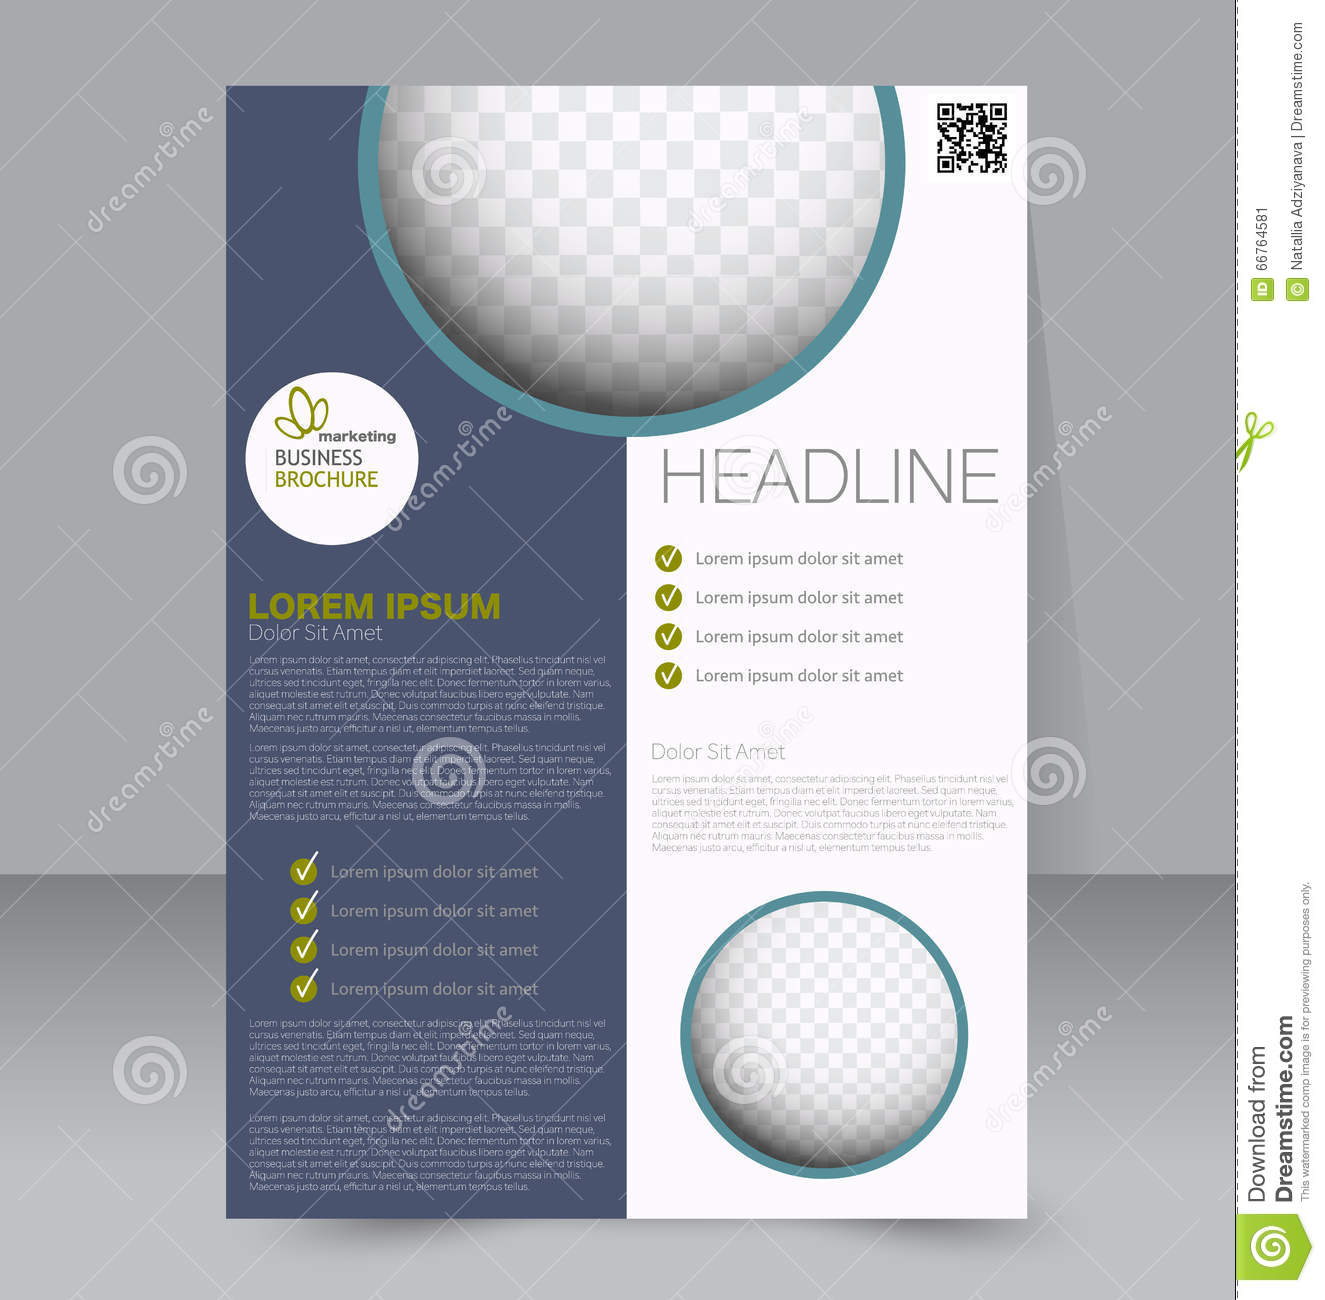 Flyer Template Business Brochure Editable A4 Poster Stock Vector Illustration Of Back Flip